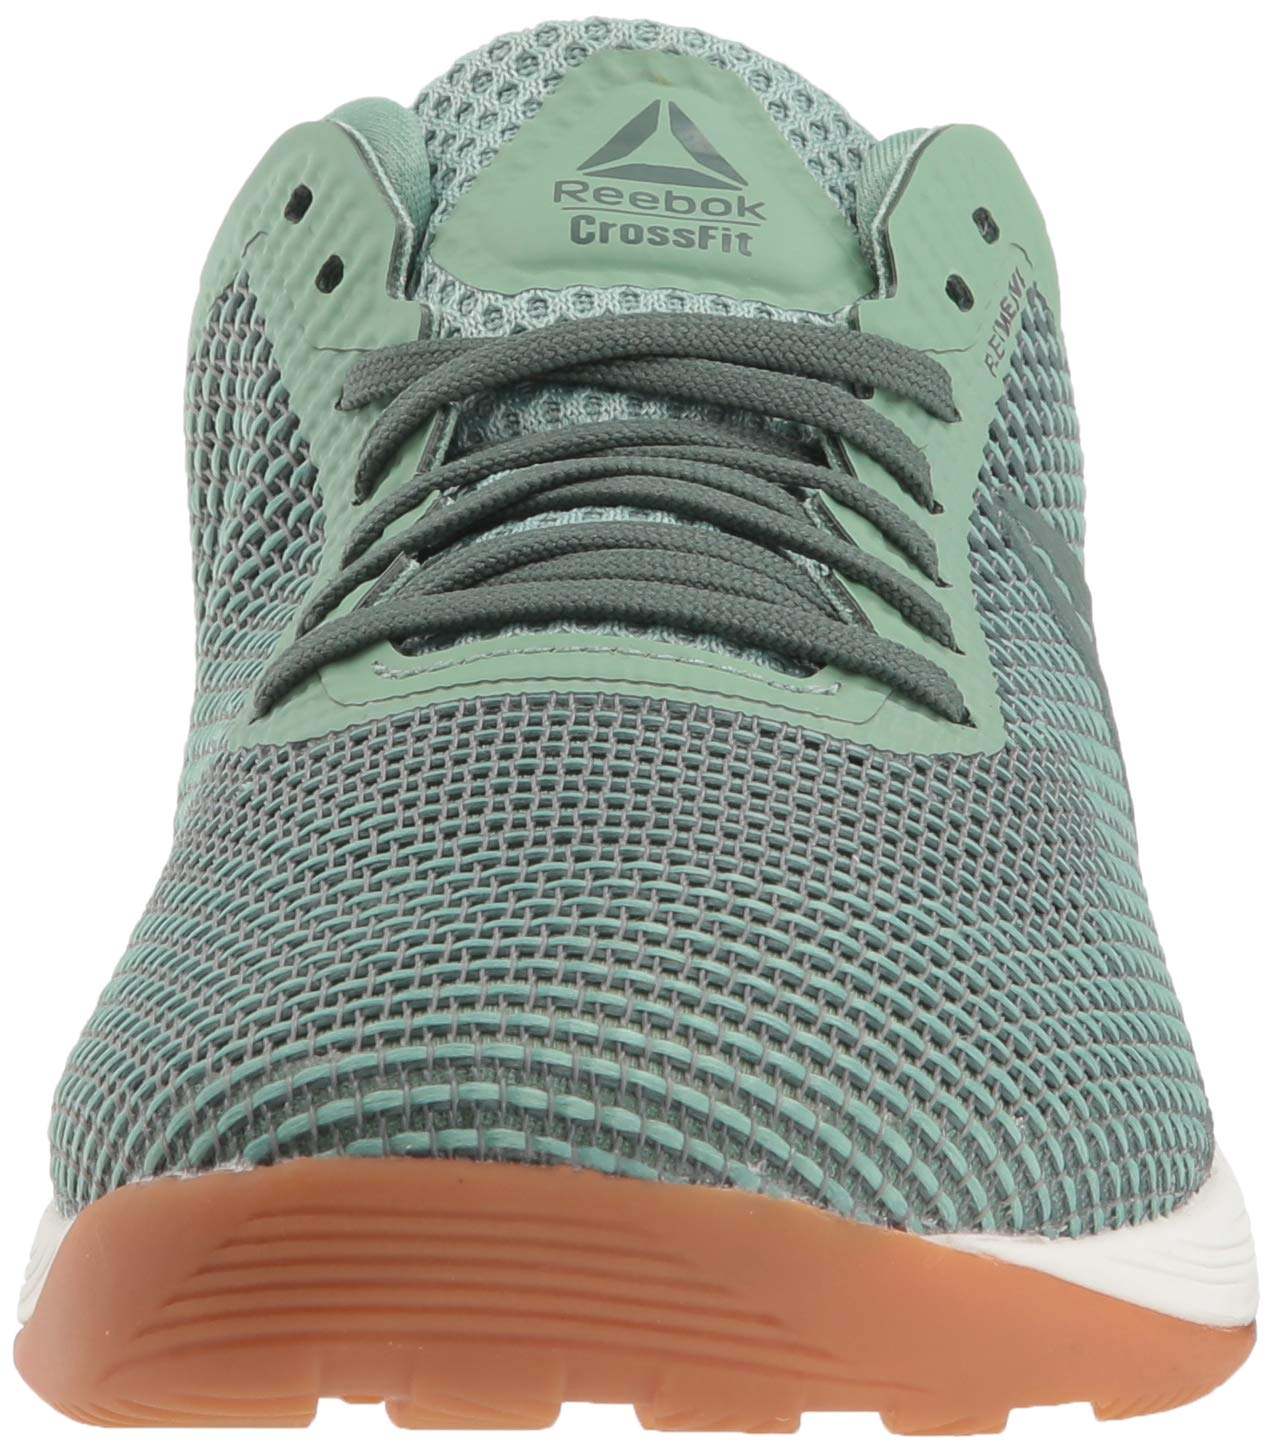 Reebok Women's CROSSFIT Nano 8.0 Flexweave Cross Trainer, industrial green/chalk grey, 5 M US by Reebok (Image #4)